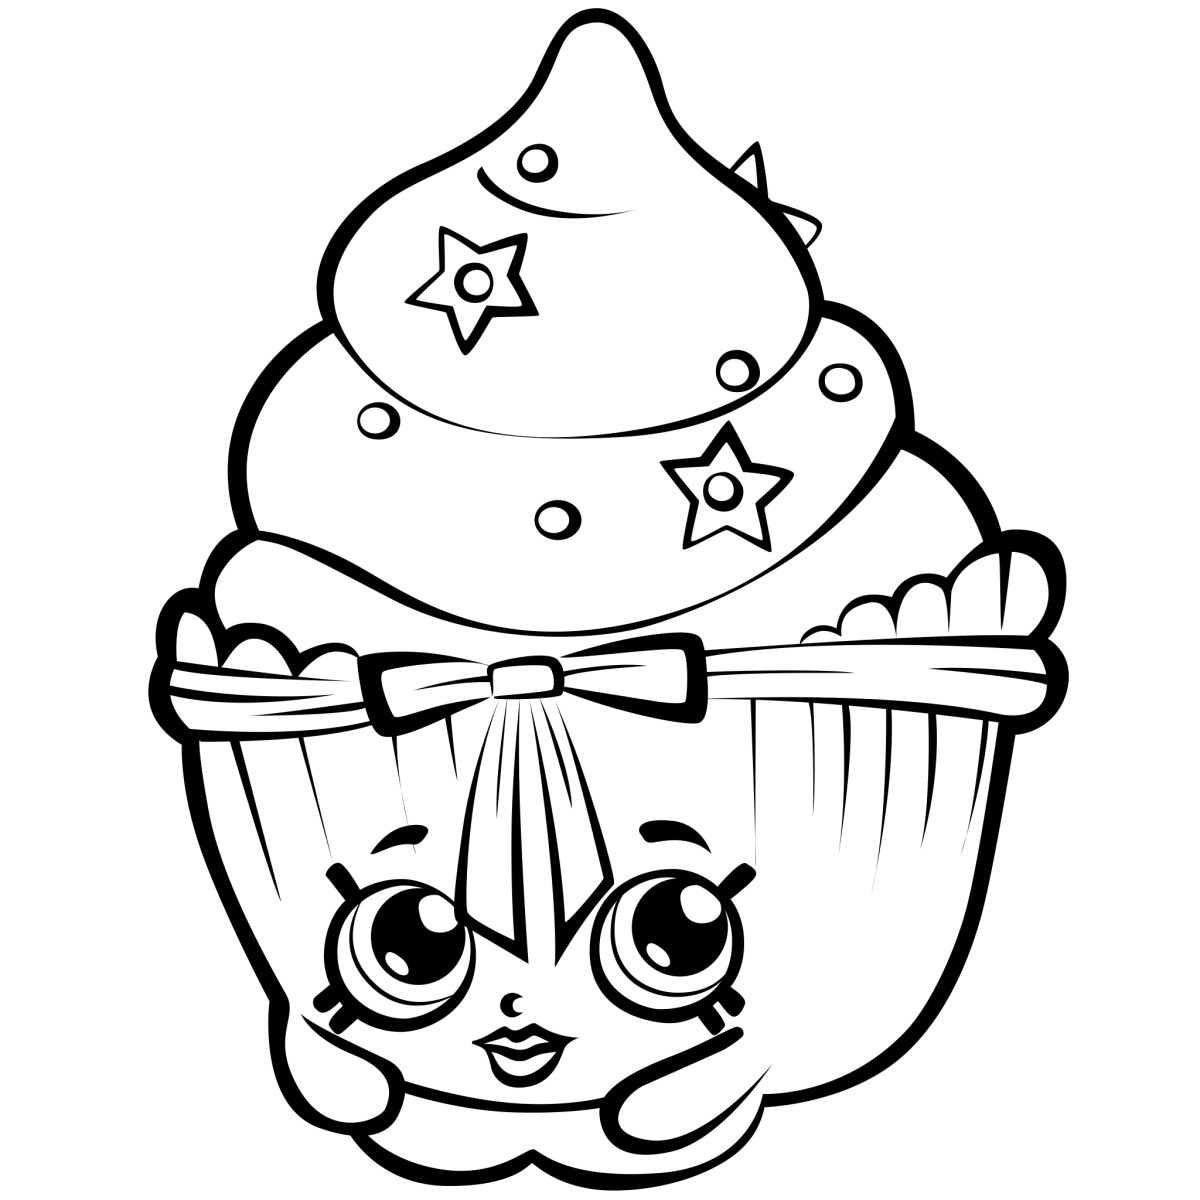 Shopkins Coloring Pages To Print Shopkins Coloring Pages